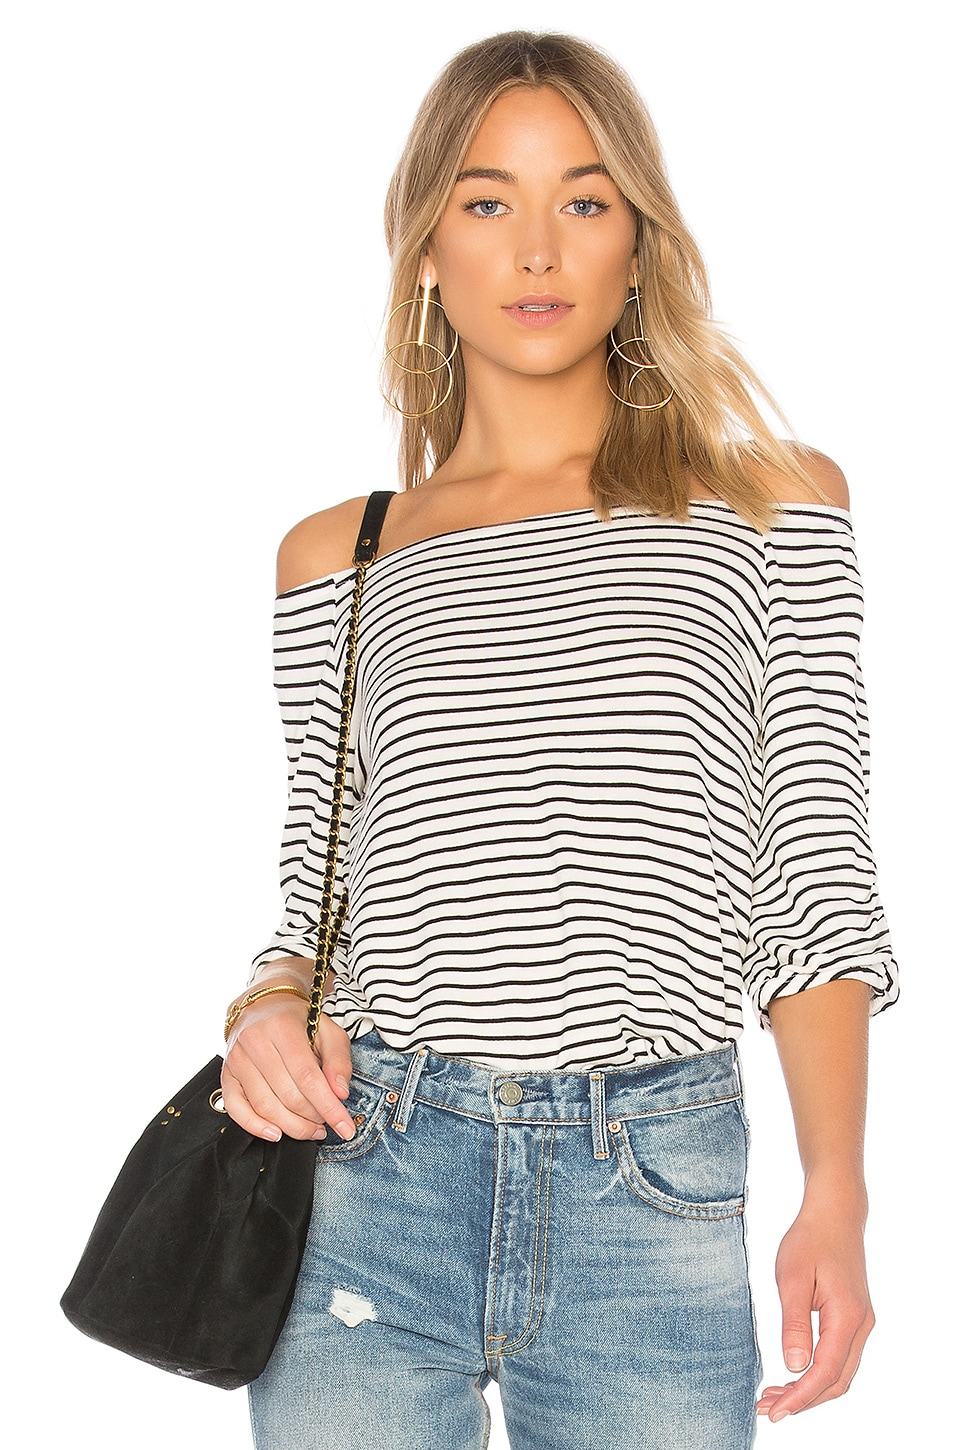 LA Made Aria Top in Black & White Stripe